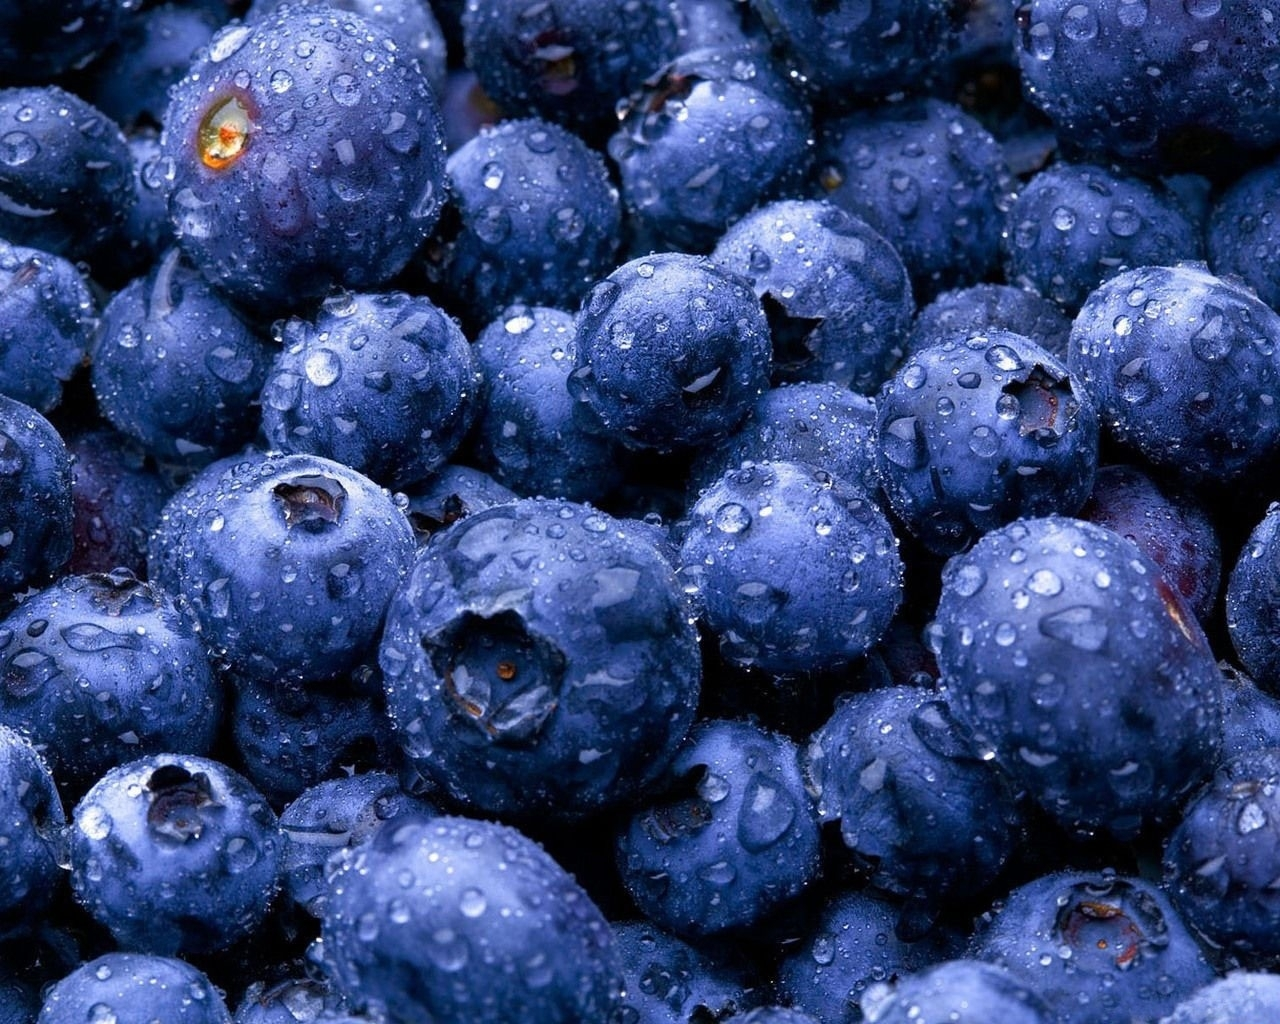 Download mobile wallpaper Plants, Food, Background, Blueberry, Berries for free.